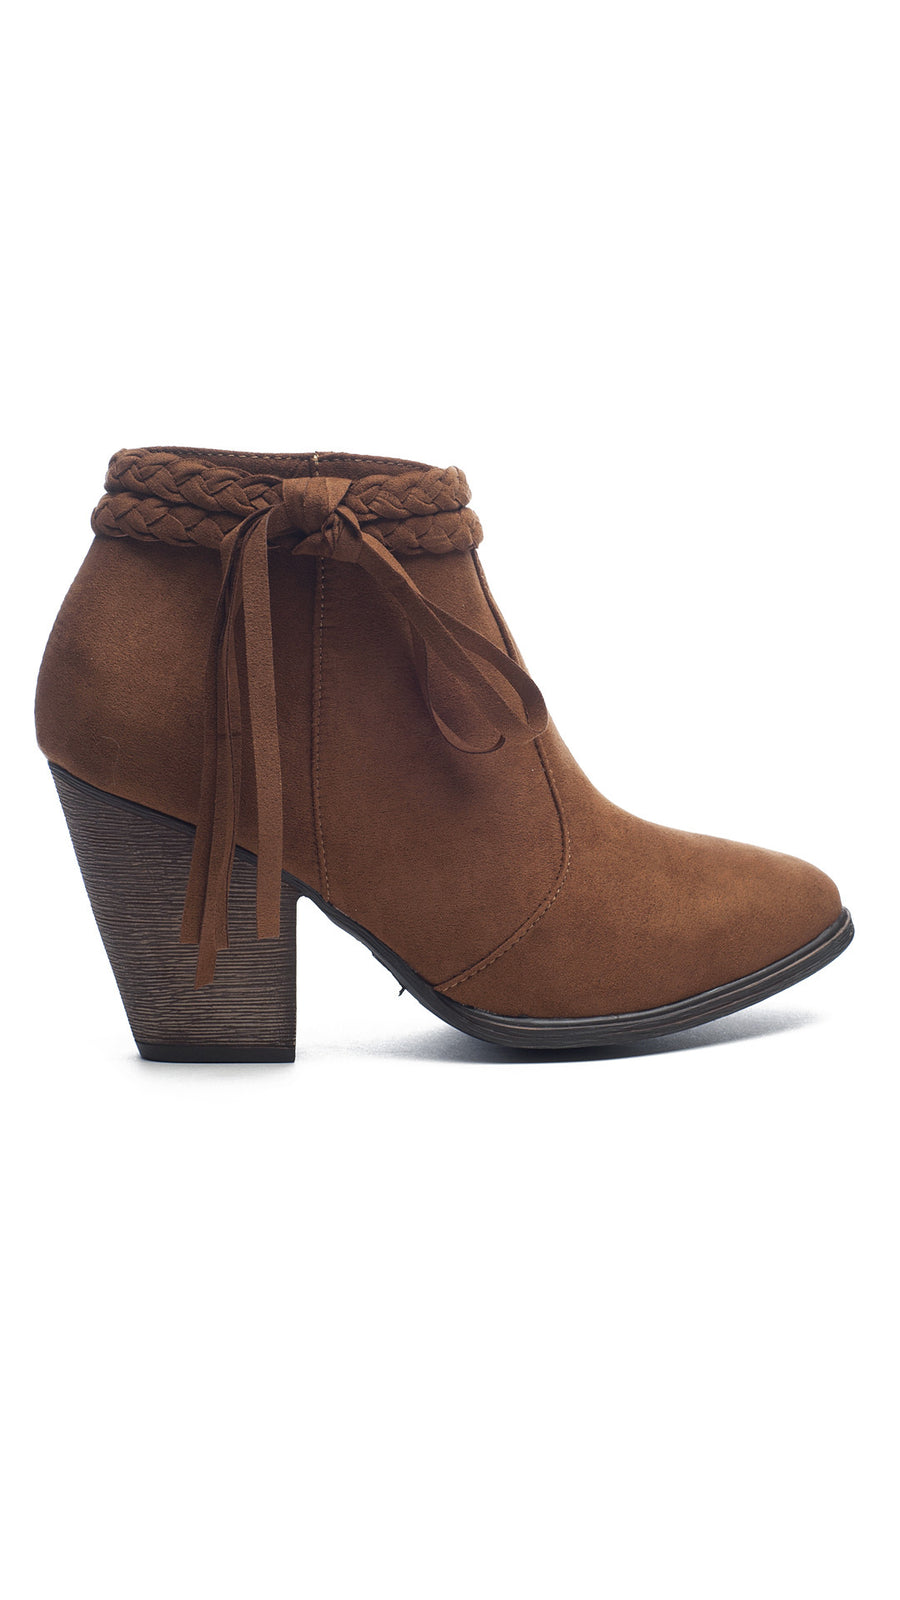 Fringe & Braided Bootie - Chestnut